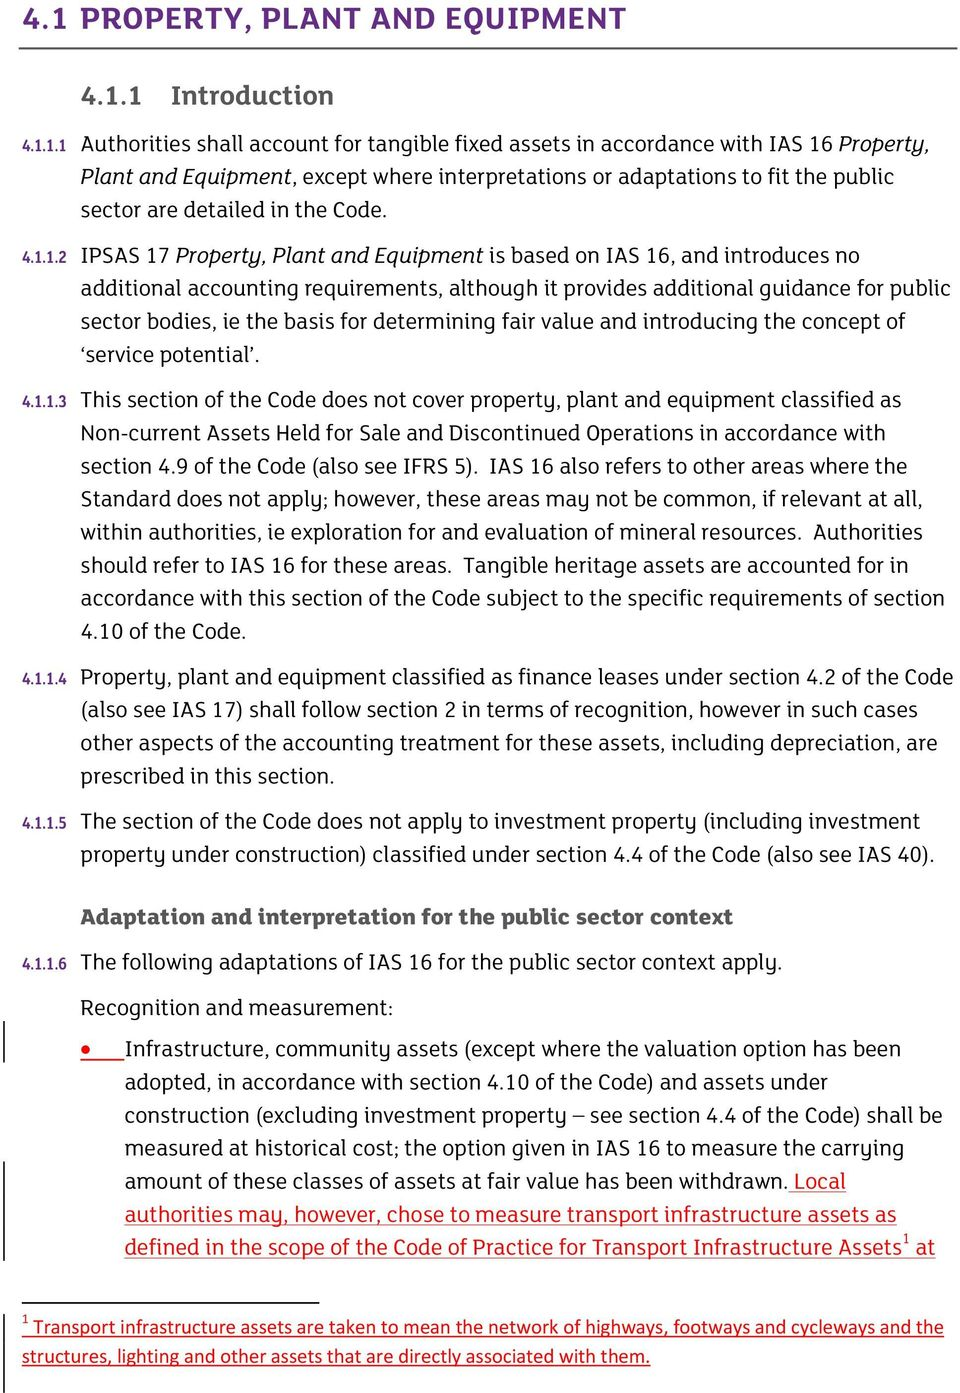 1.2 IPSAS 17 Property, Plant and Equipment is based on IAS 16, and introduces no additional accounting requirements, although it provides additional guidance for public sector bodies, ie the basis